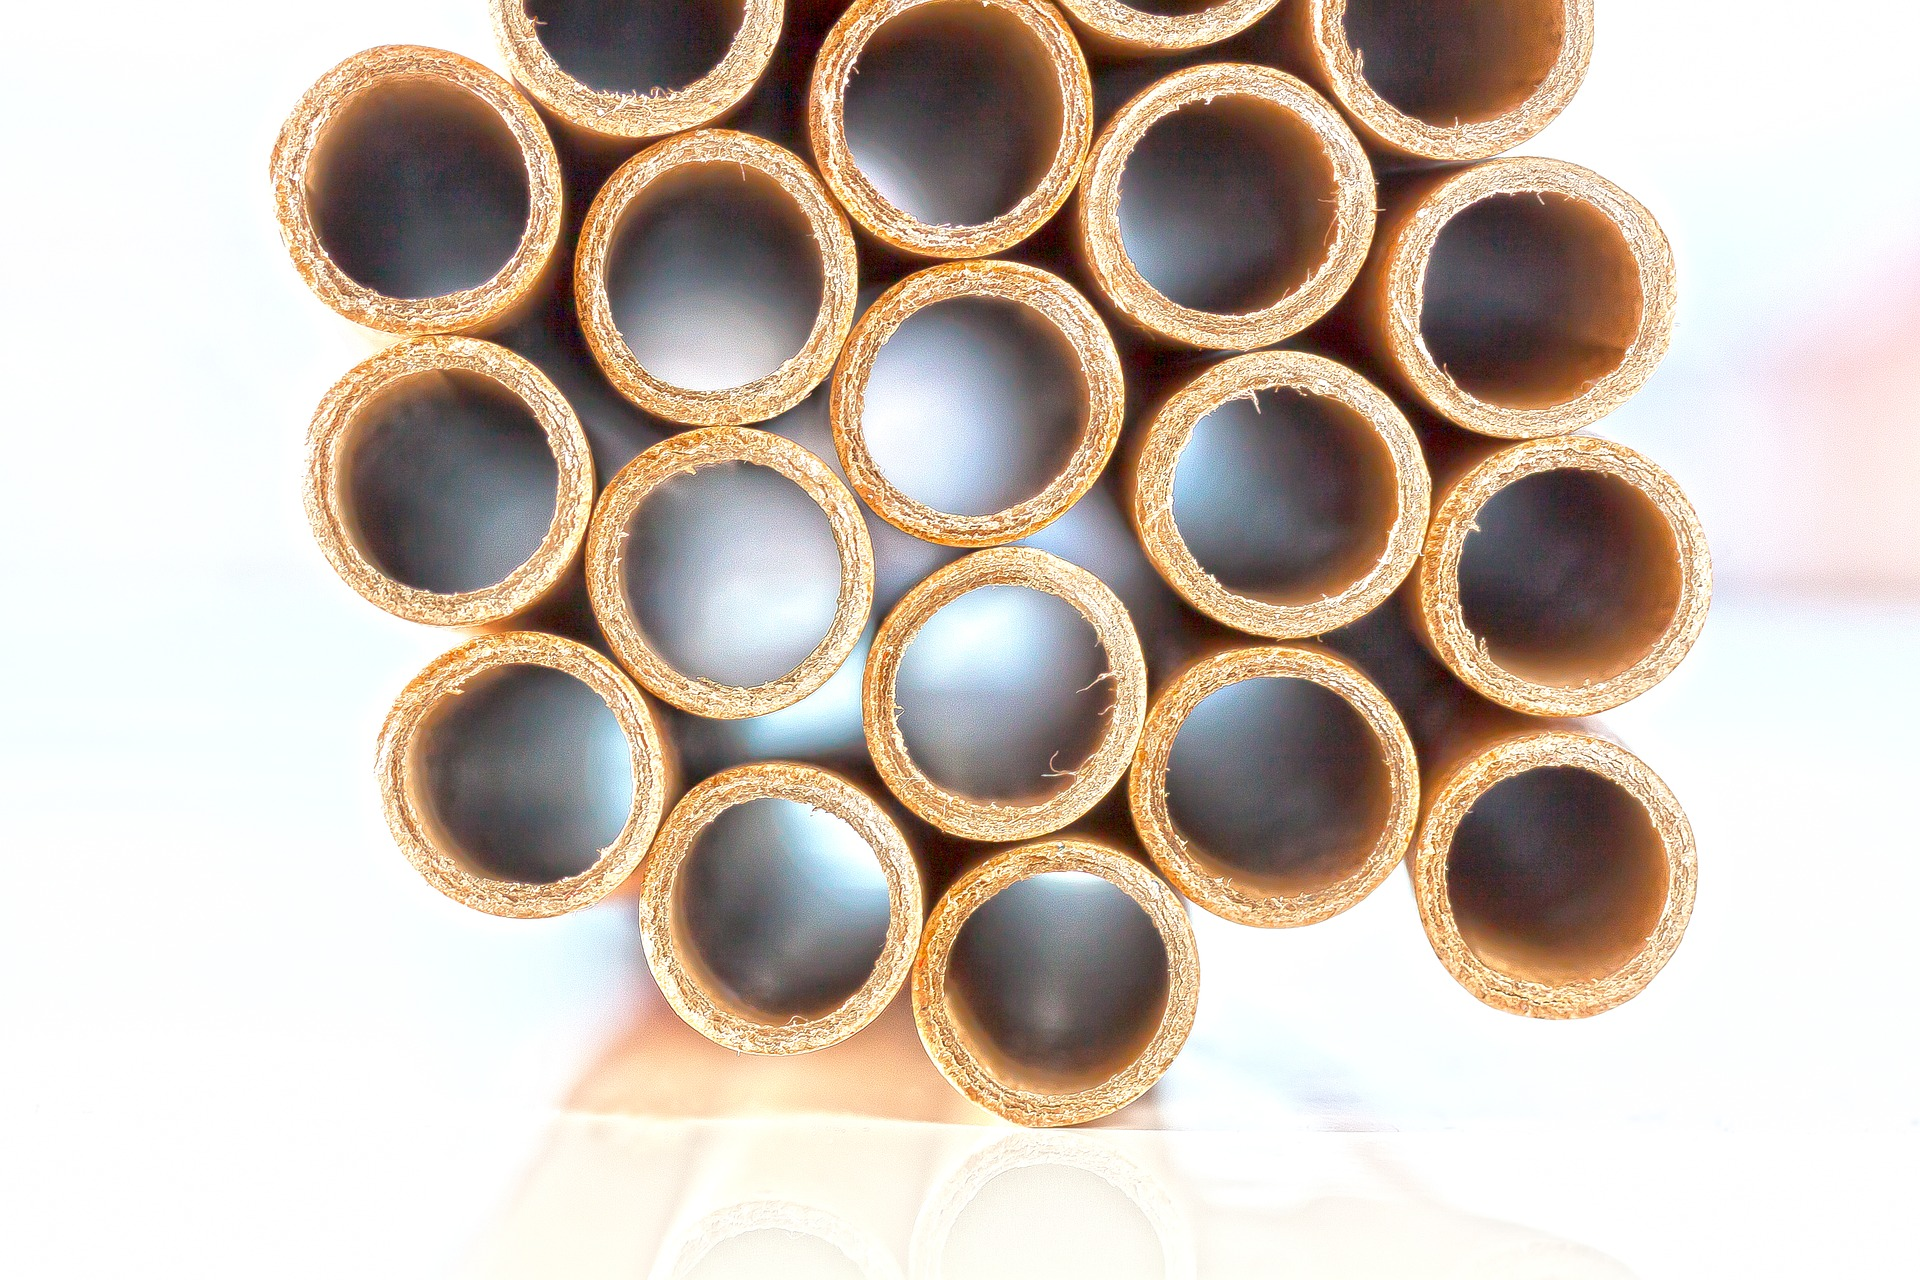 Buy High Quality Cardboard Tubes for Packaging Online With Reasonable Price?